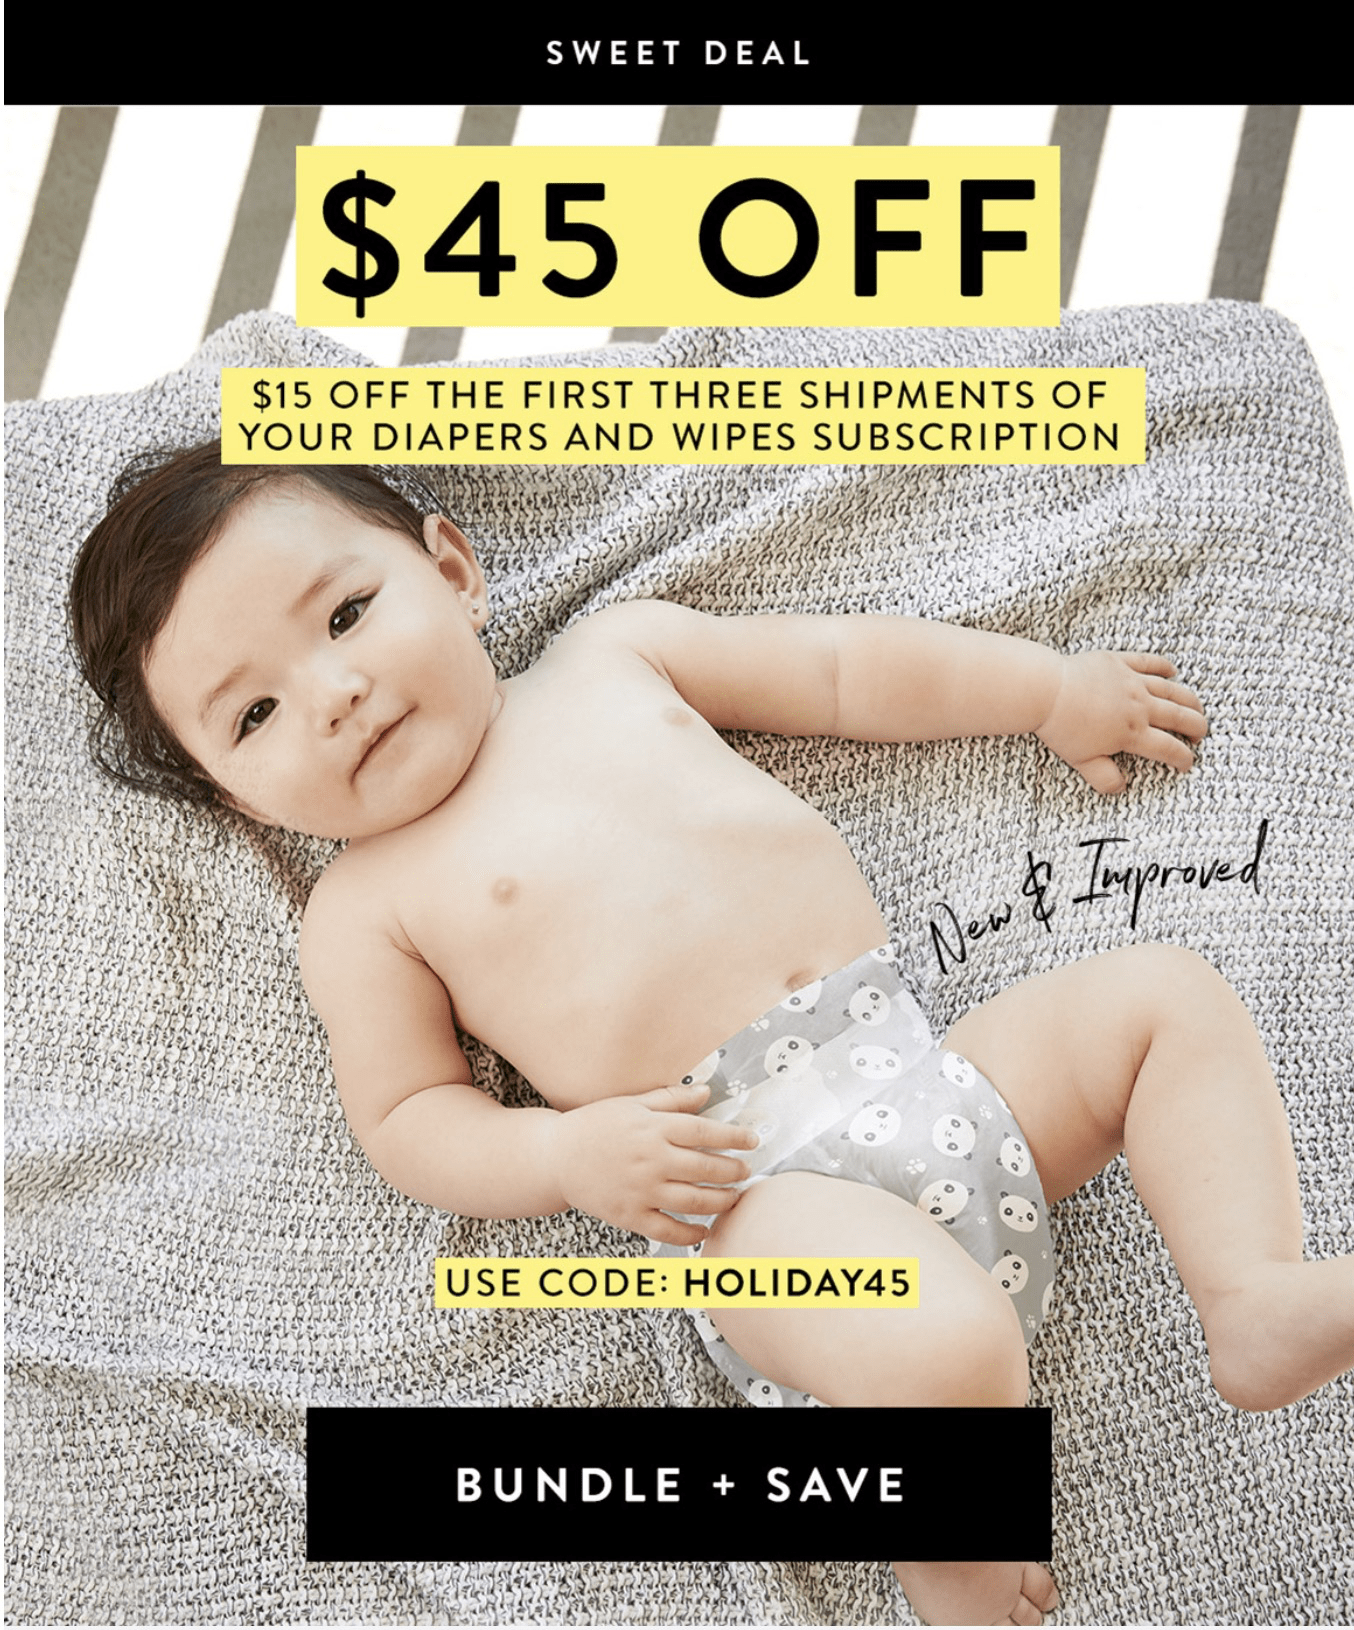 Honest Company Diaper Bundle Coupon: Save $45 with $15 Off First Three Bundles!